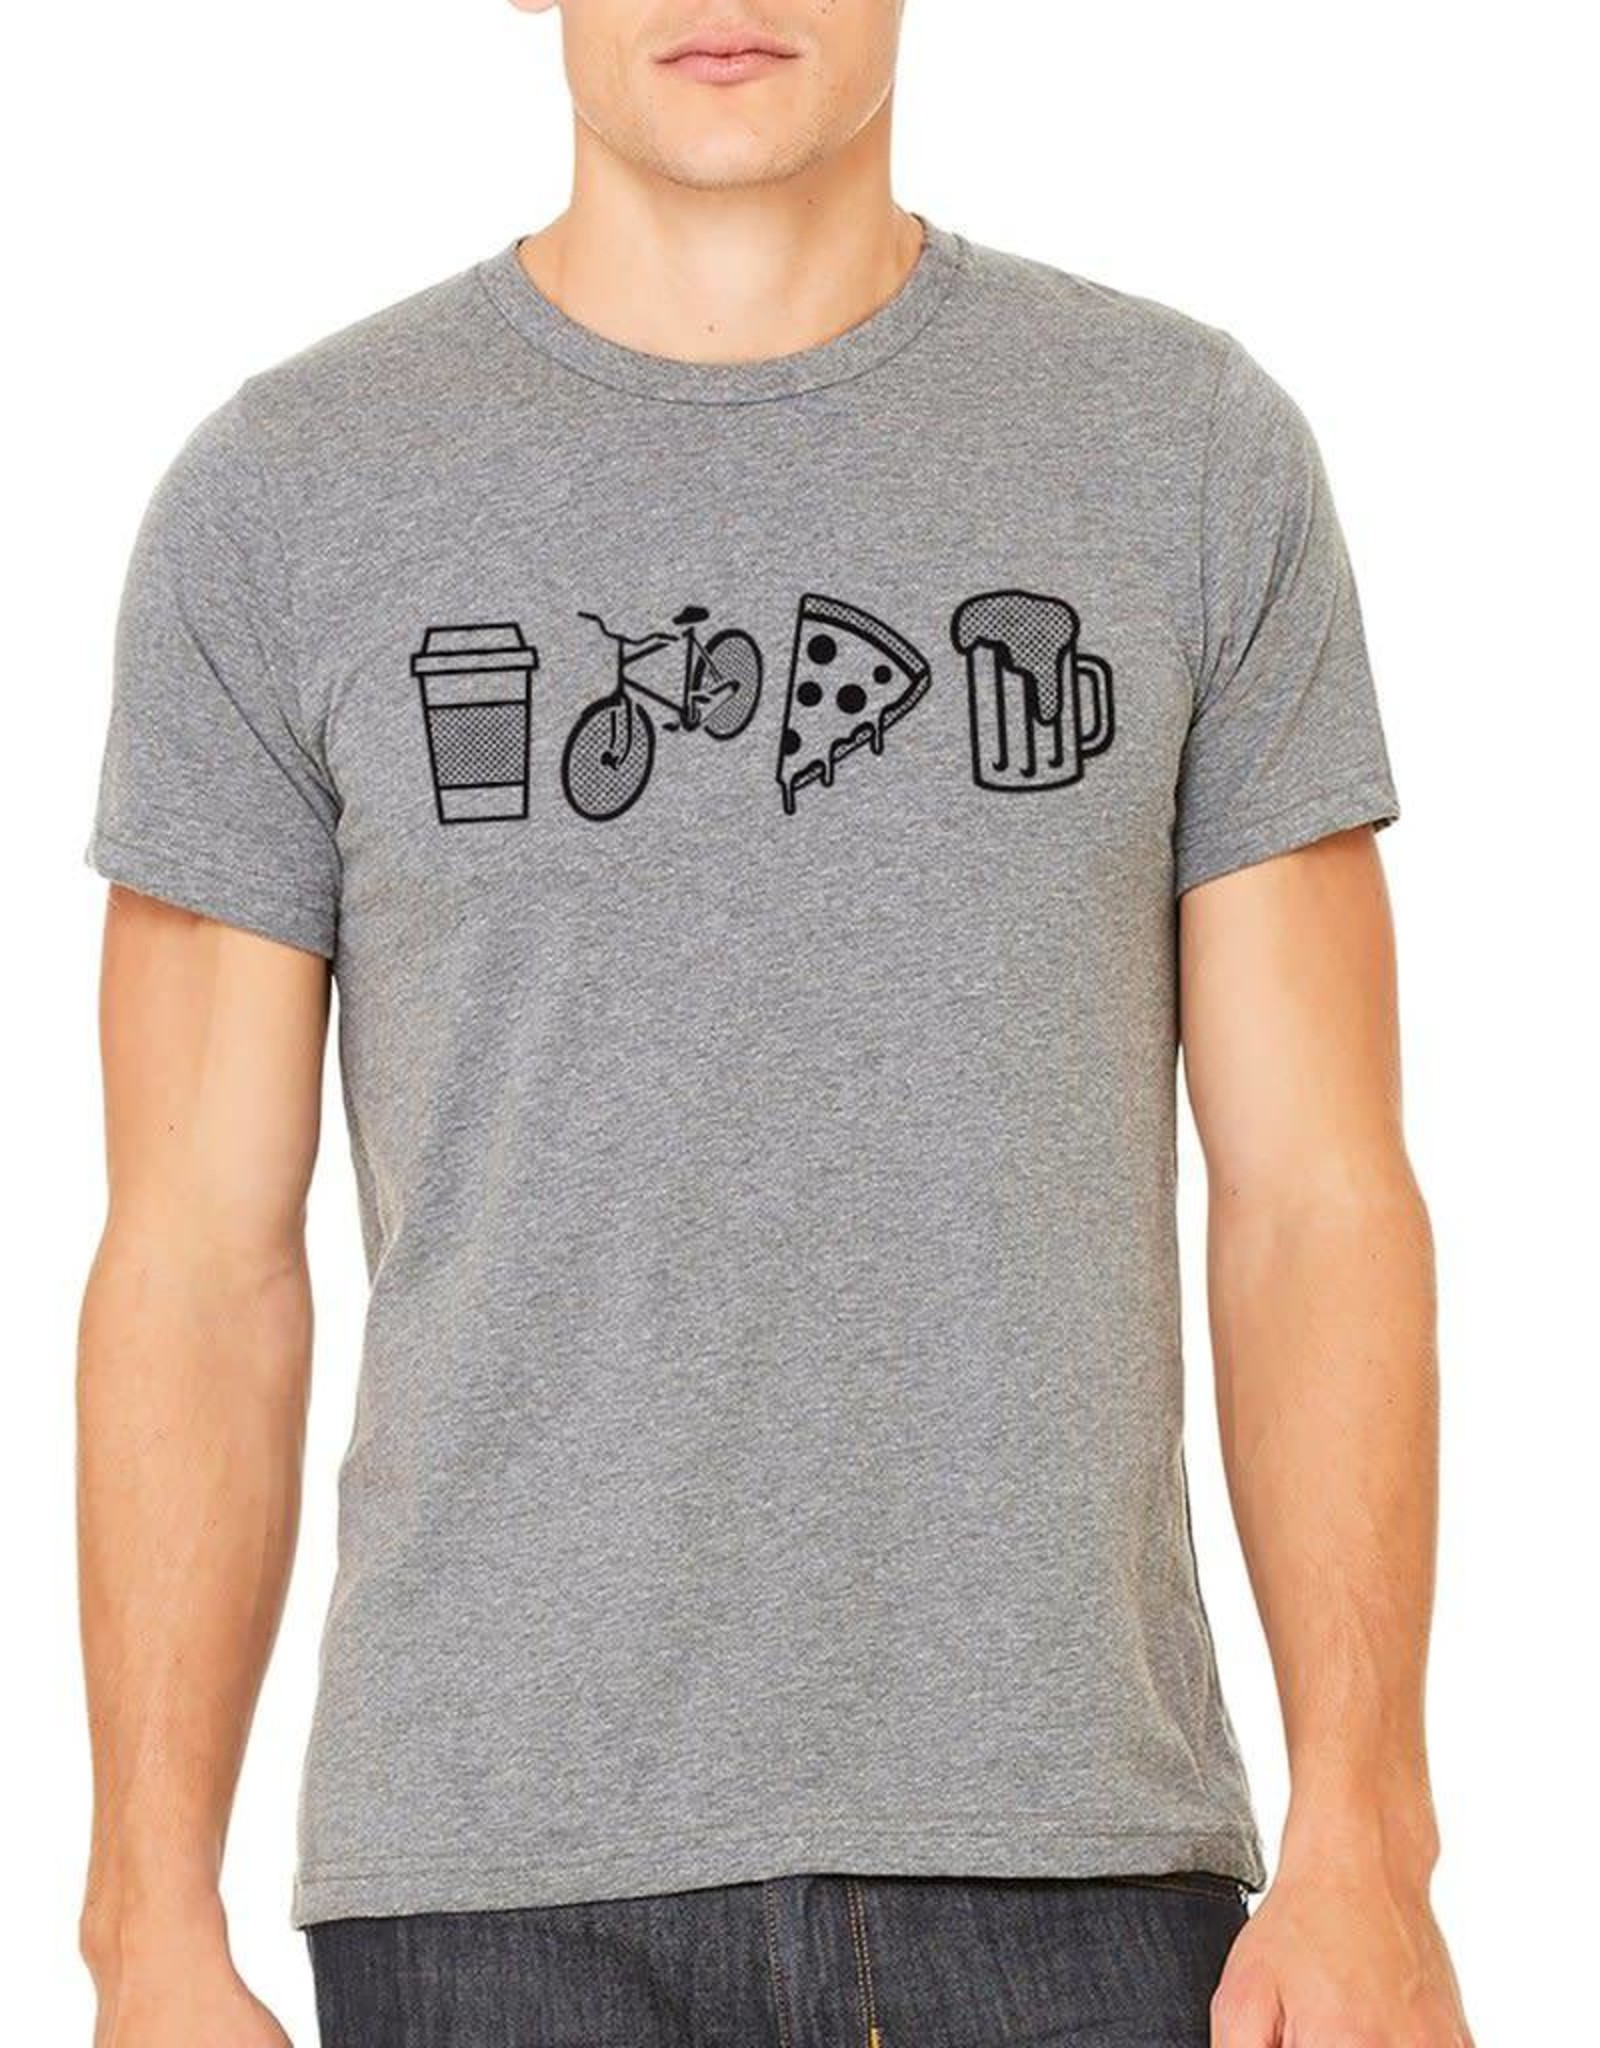 SFC Casual Cycling Clothing T Shirt - Essentials